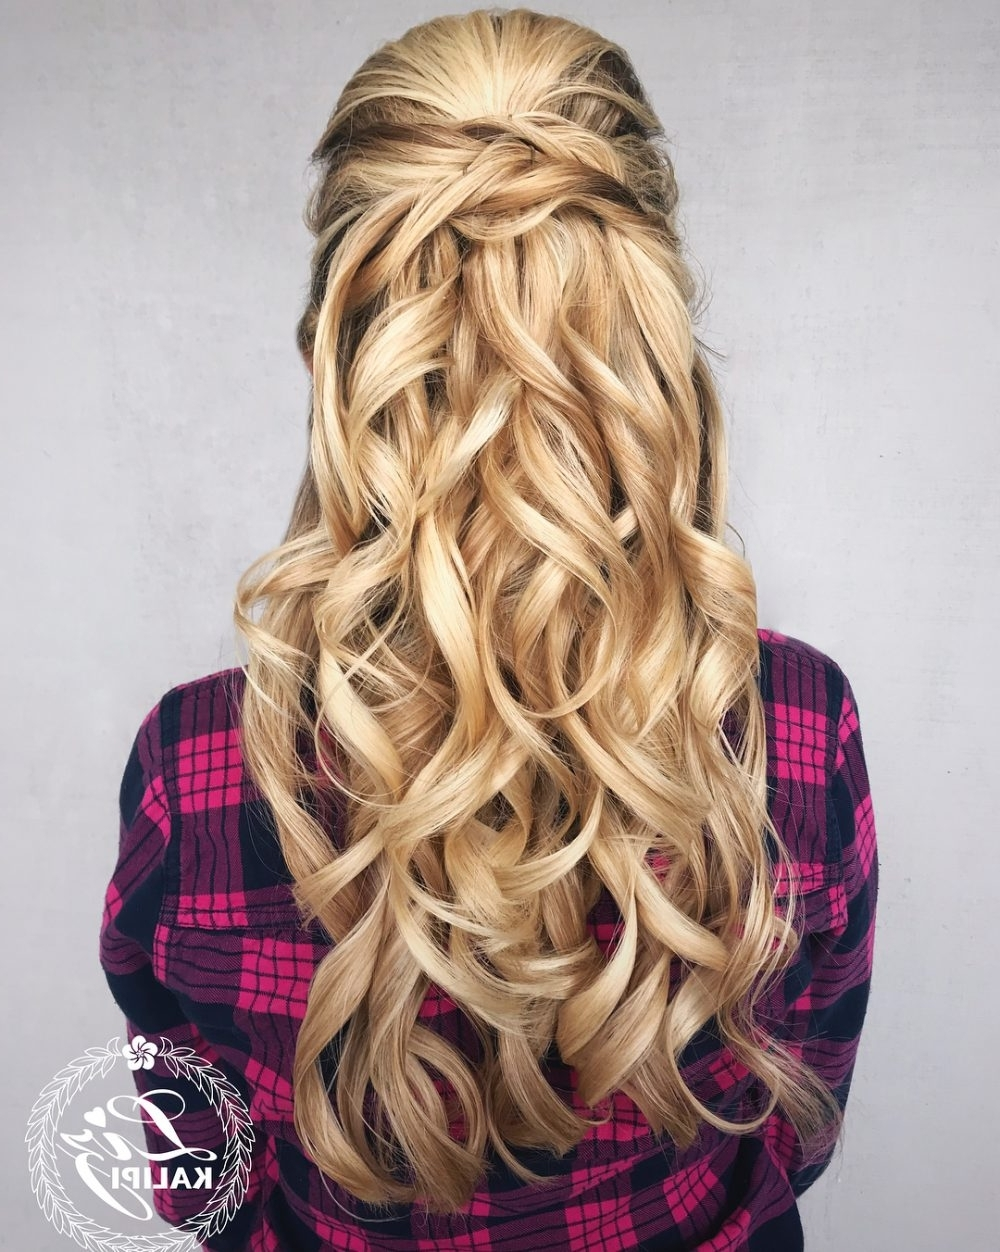 29 Prom Hairstyles For Long Hair That Are Gorgeous (Updated For 2018) Within Really Long Hair Updo Hairstyles (View 2 of 15)